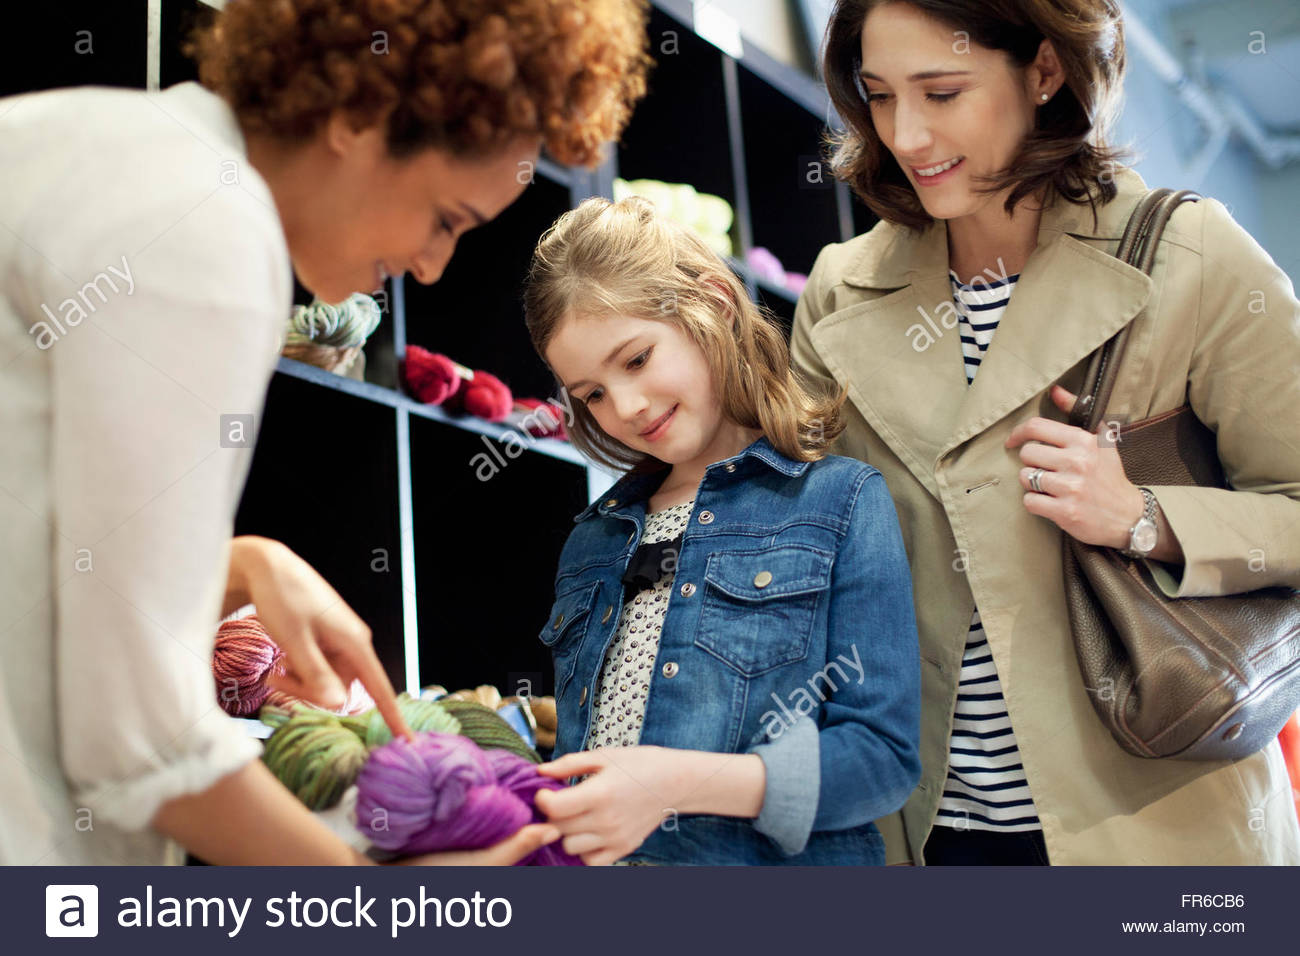 business owner advising on yarn - Stock Image